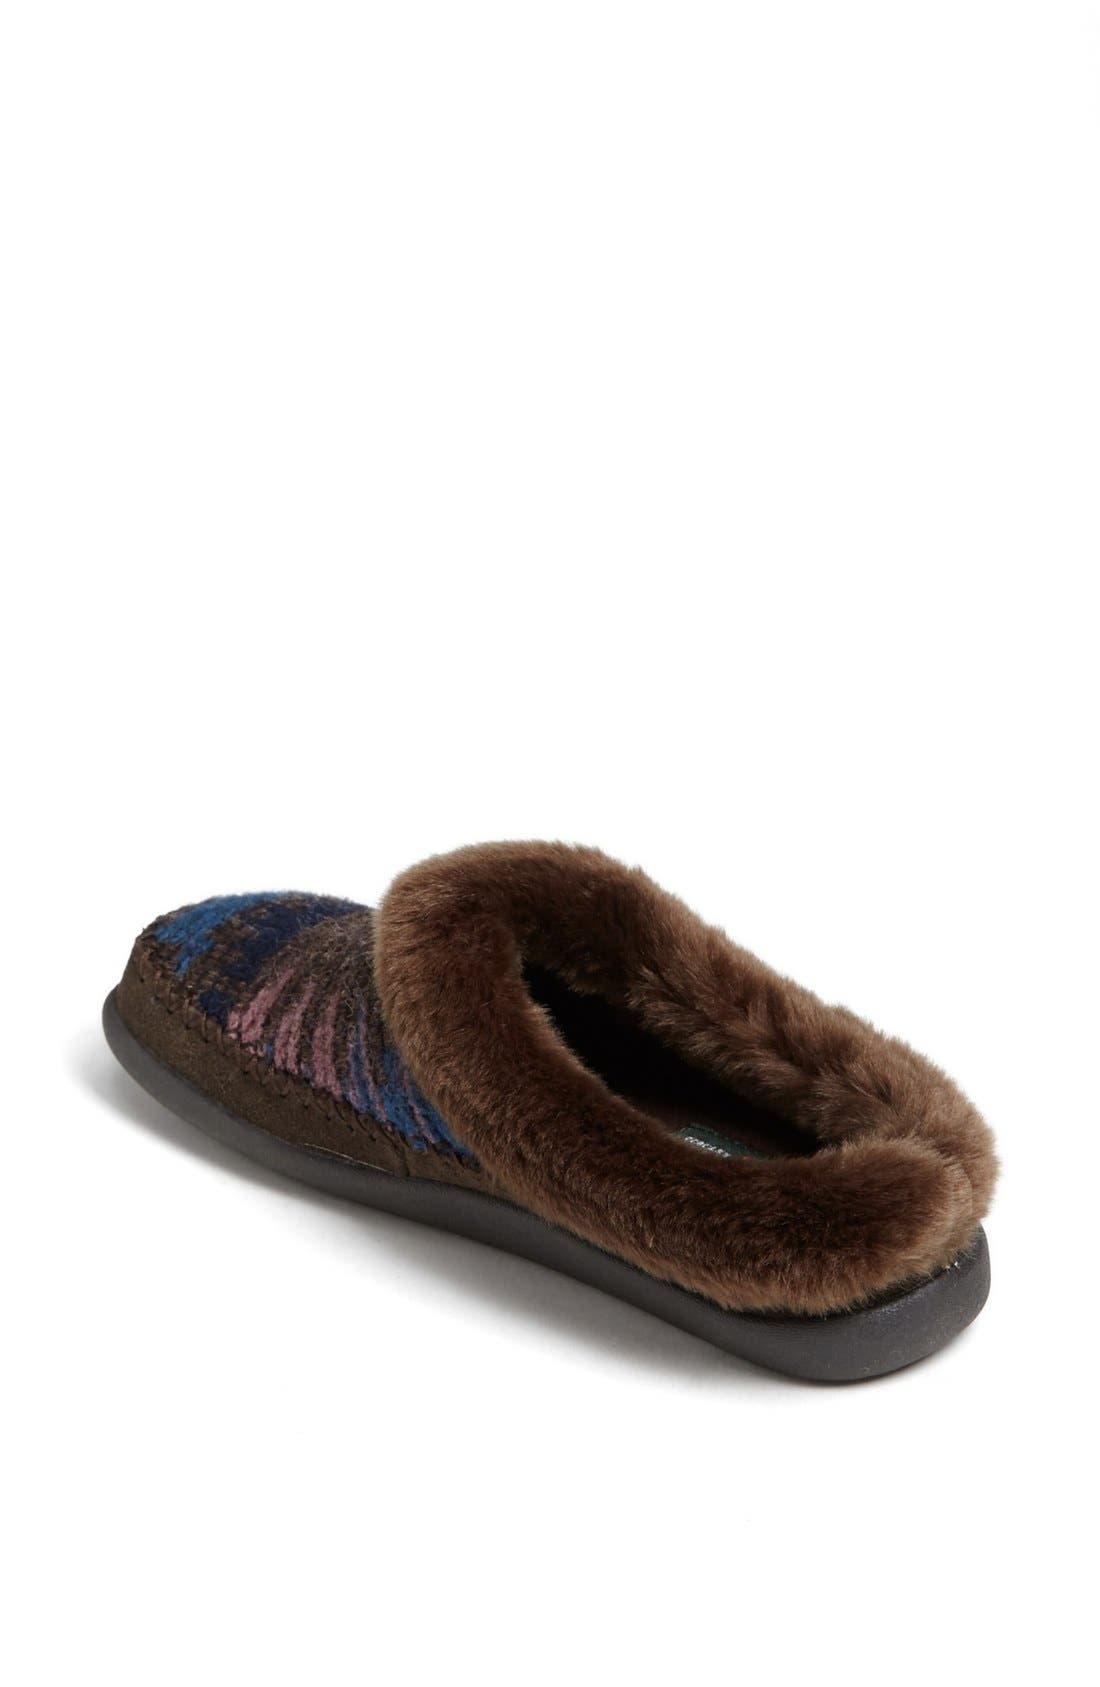 Alternate Image 2  - Woolrich 'Dove Creek' Slipper (Women)